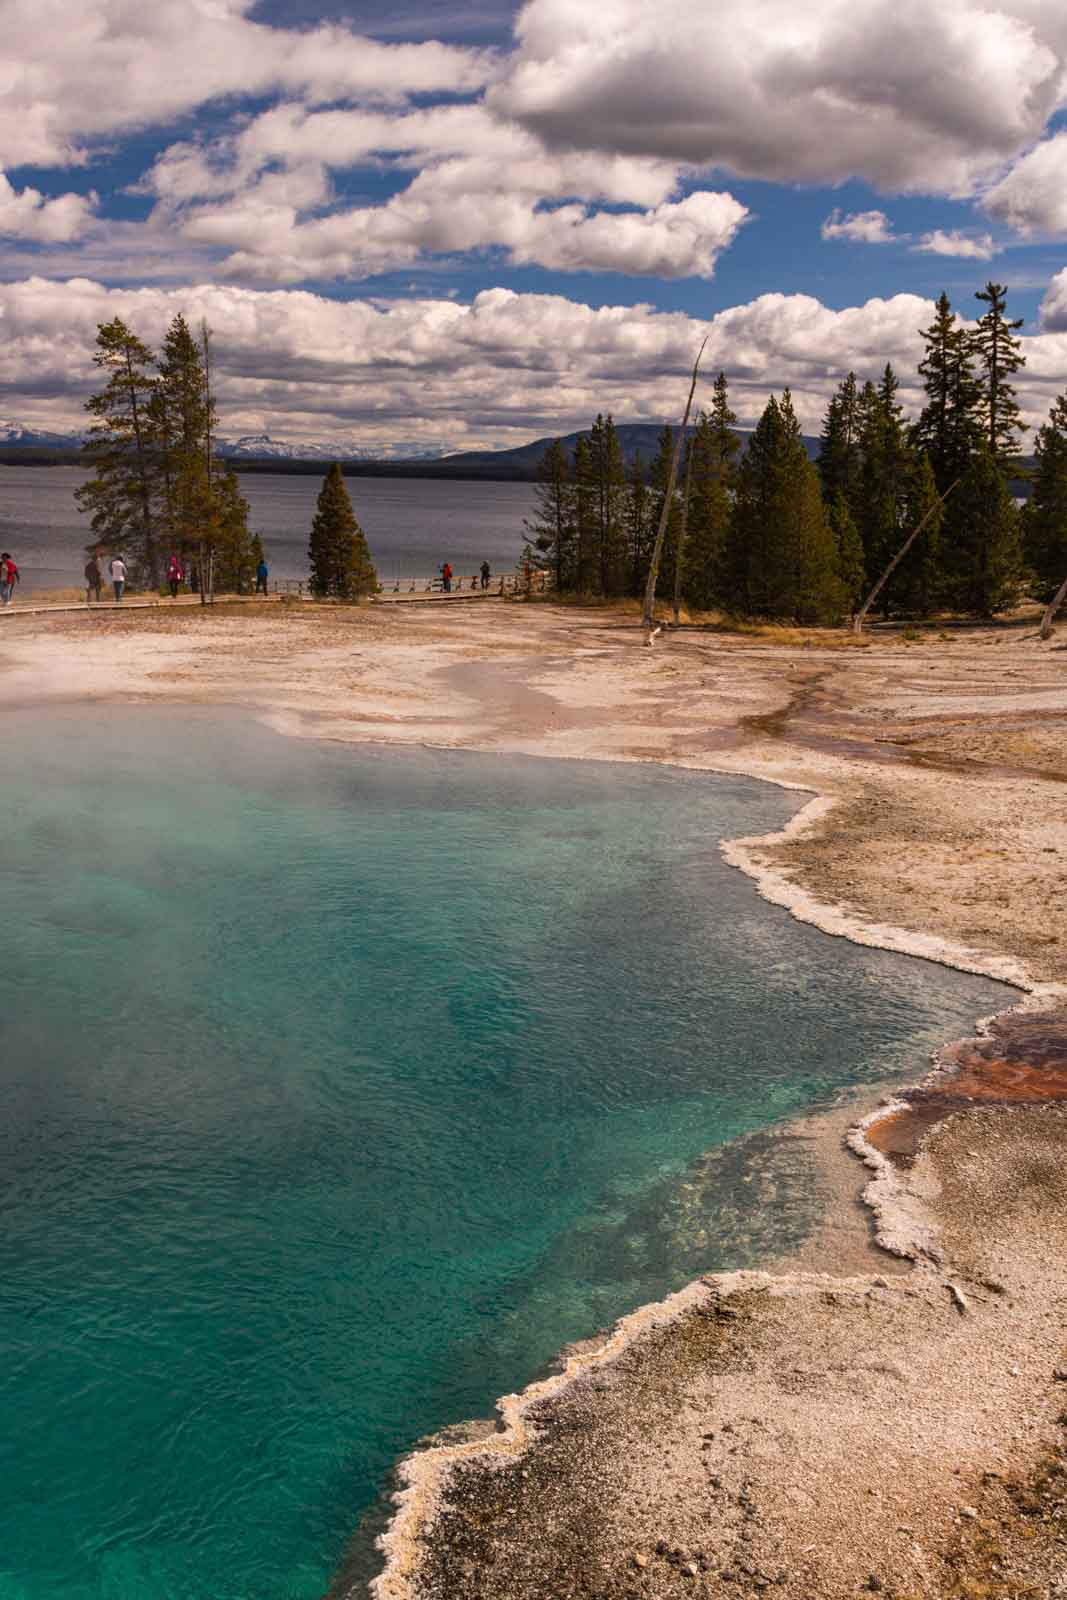 West Thumb Geyser Basin is another exciting thing to do in Yellowstone